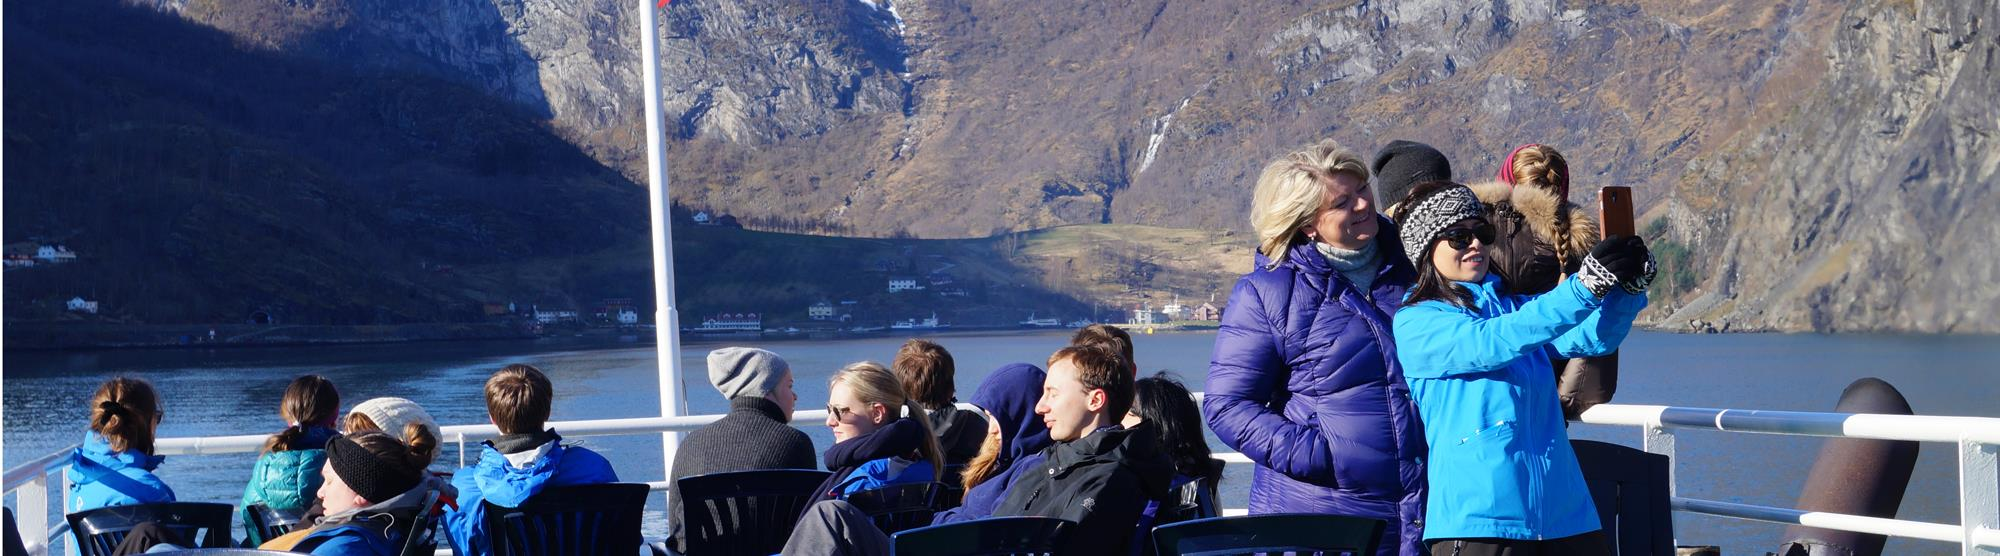 Fjord tours in winter